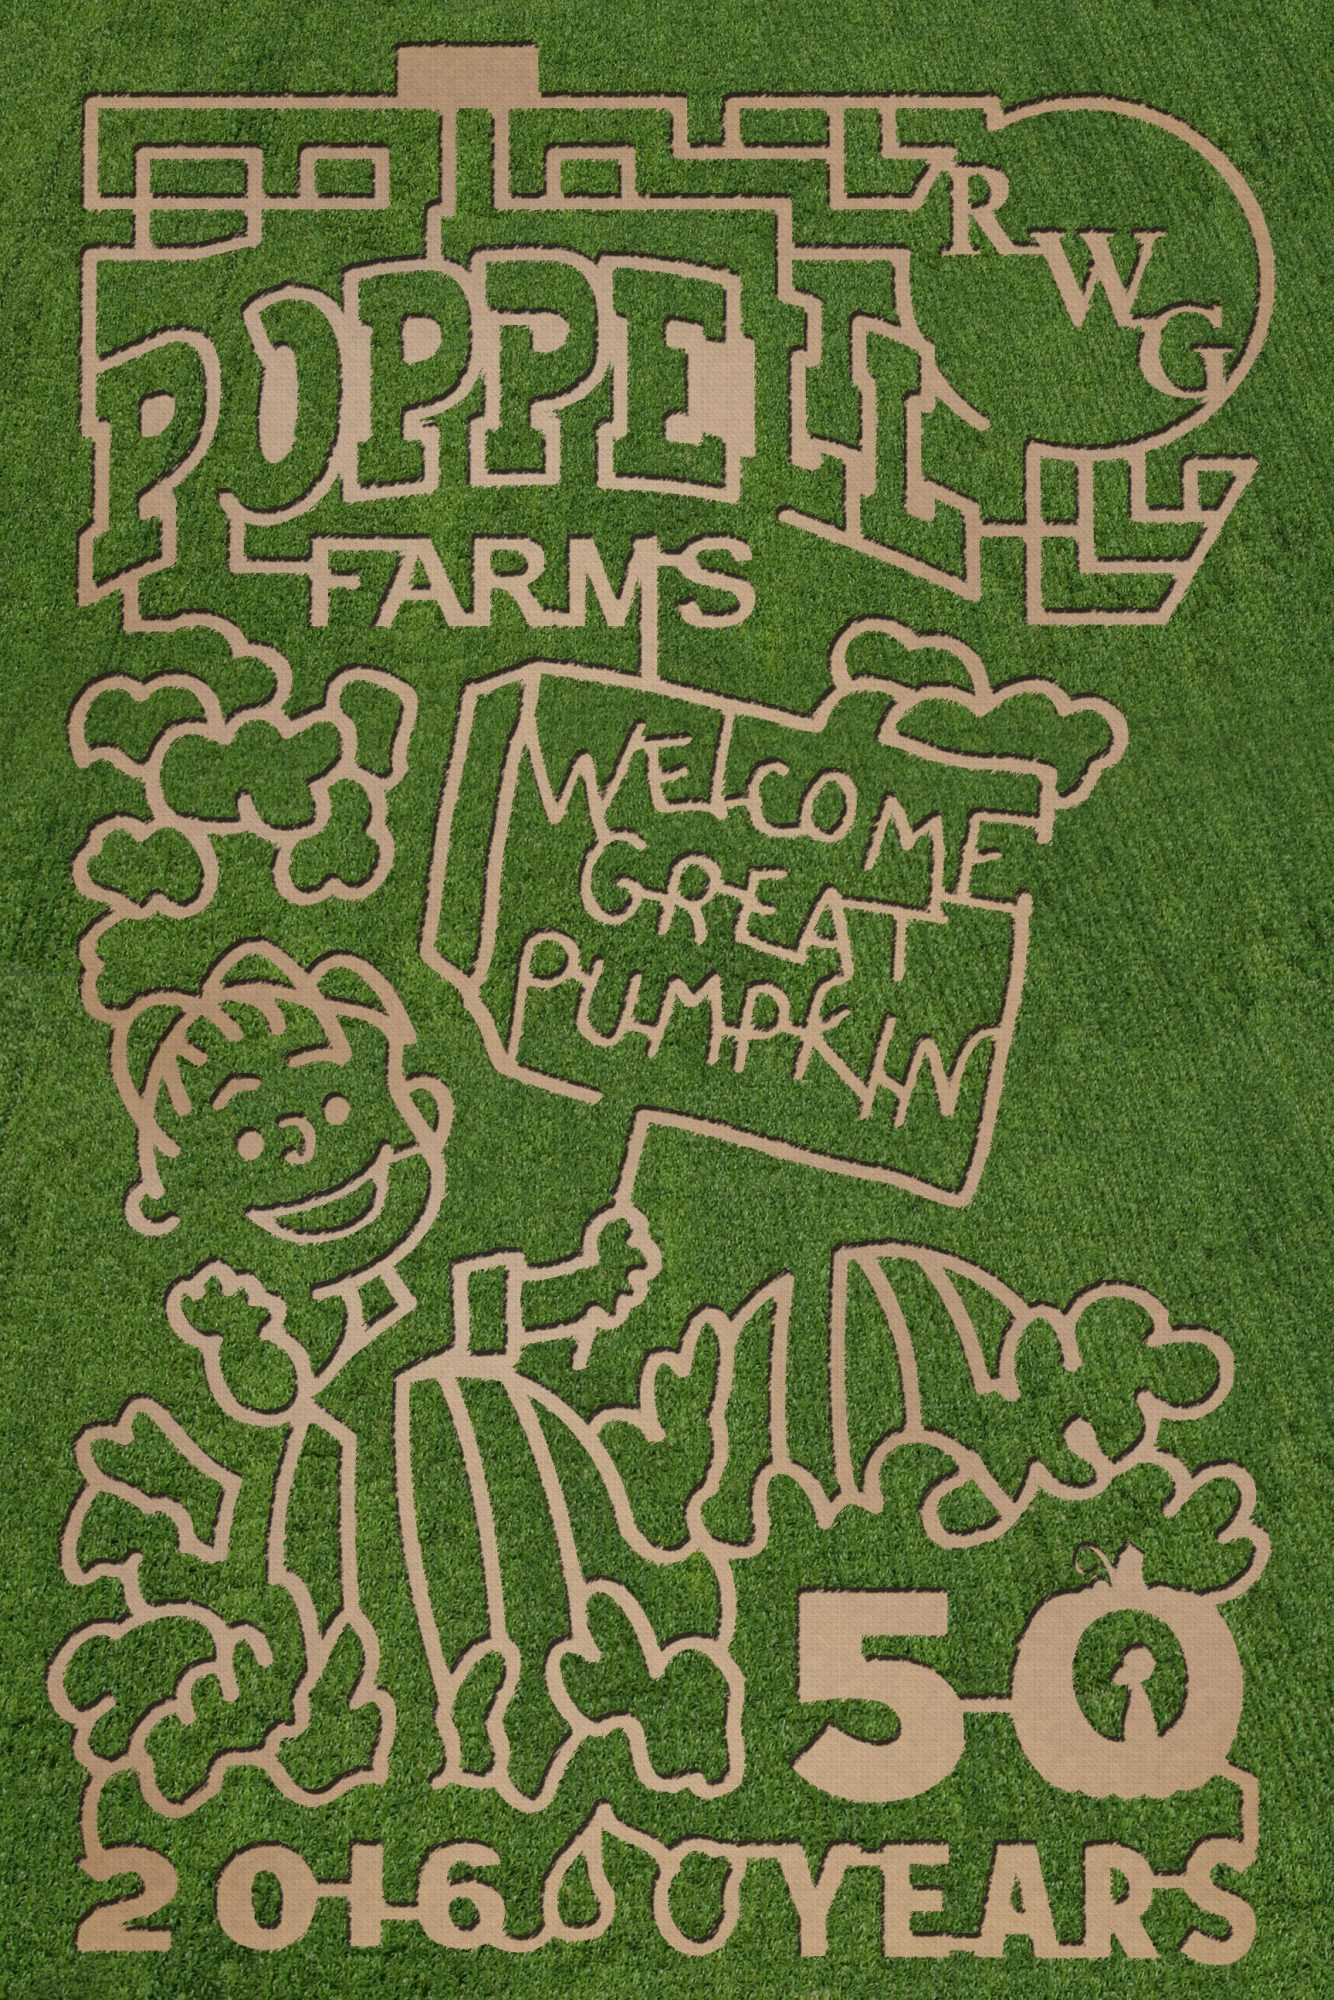 Poppell Farms Corn Maze in Odum, GA